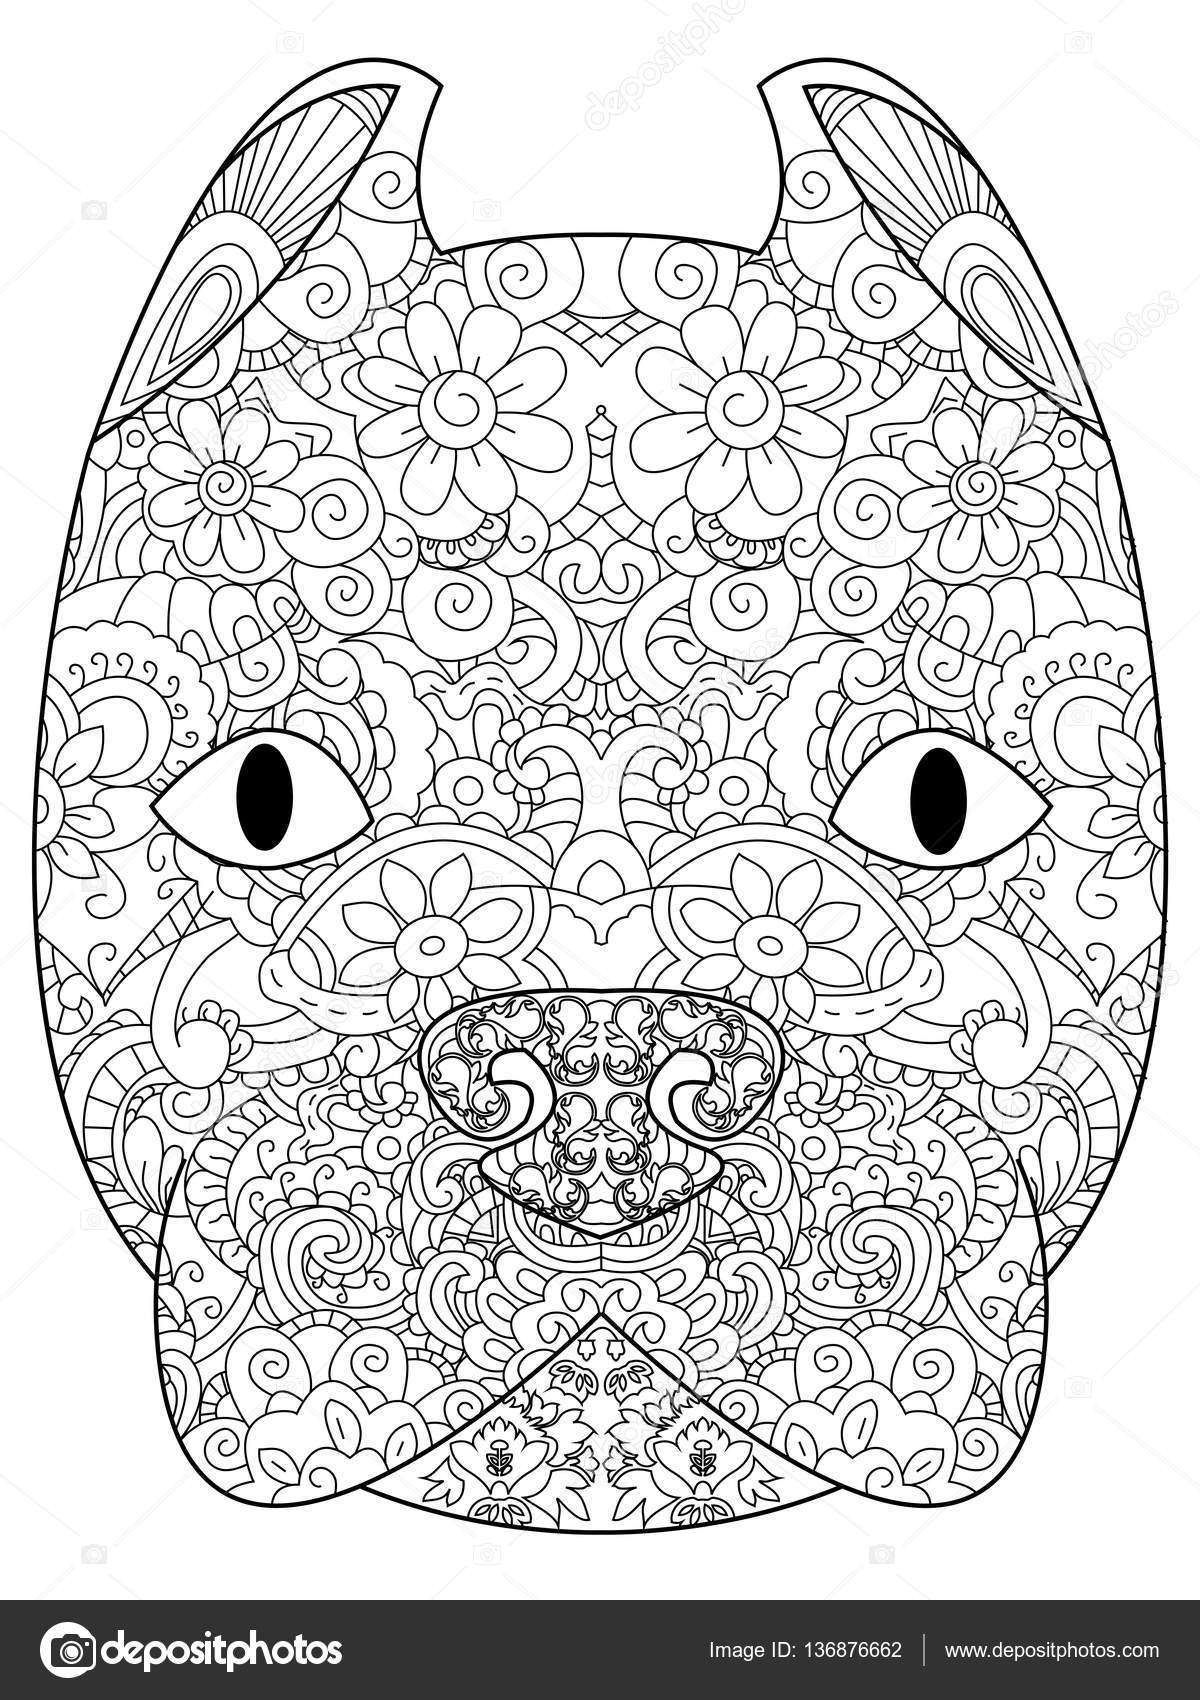 Good American Pit Bull Terrier Head Coloring Book For Adults Vector Illustration Anti Stress Adult Zentangle Style Black And White Lines